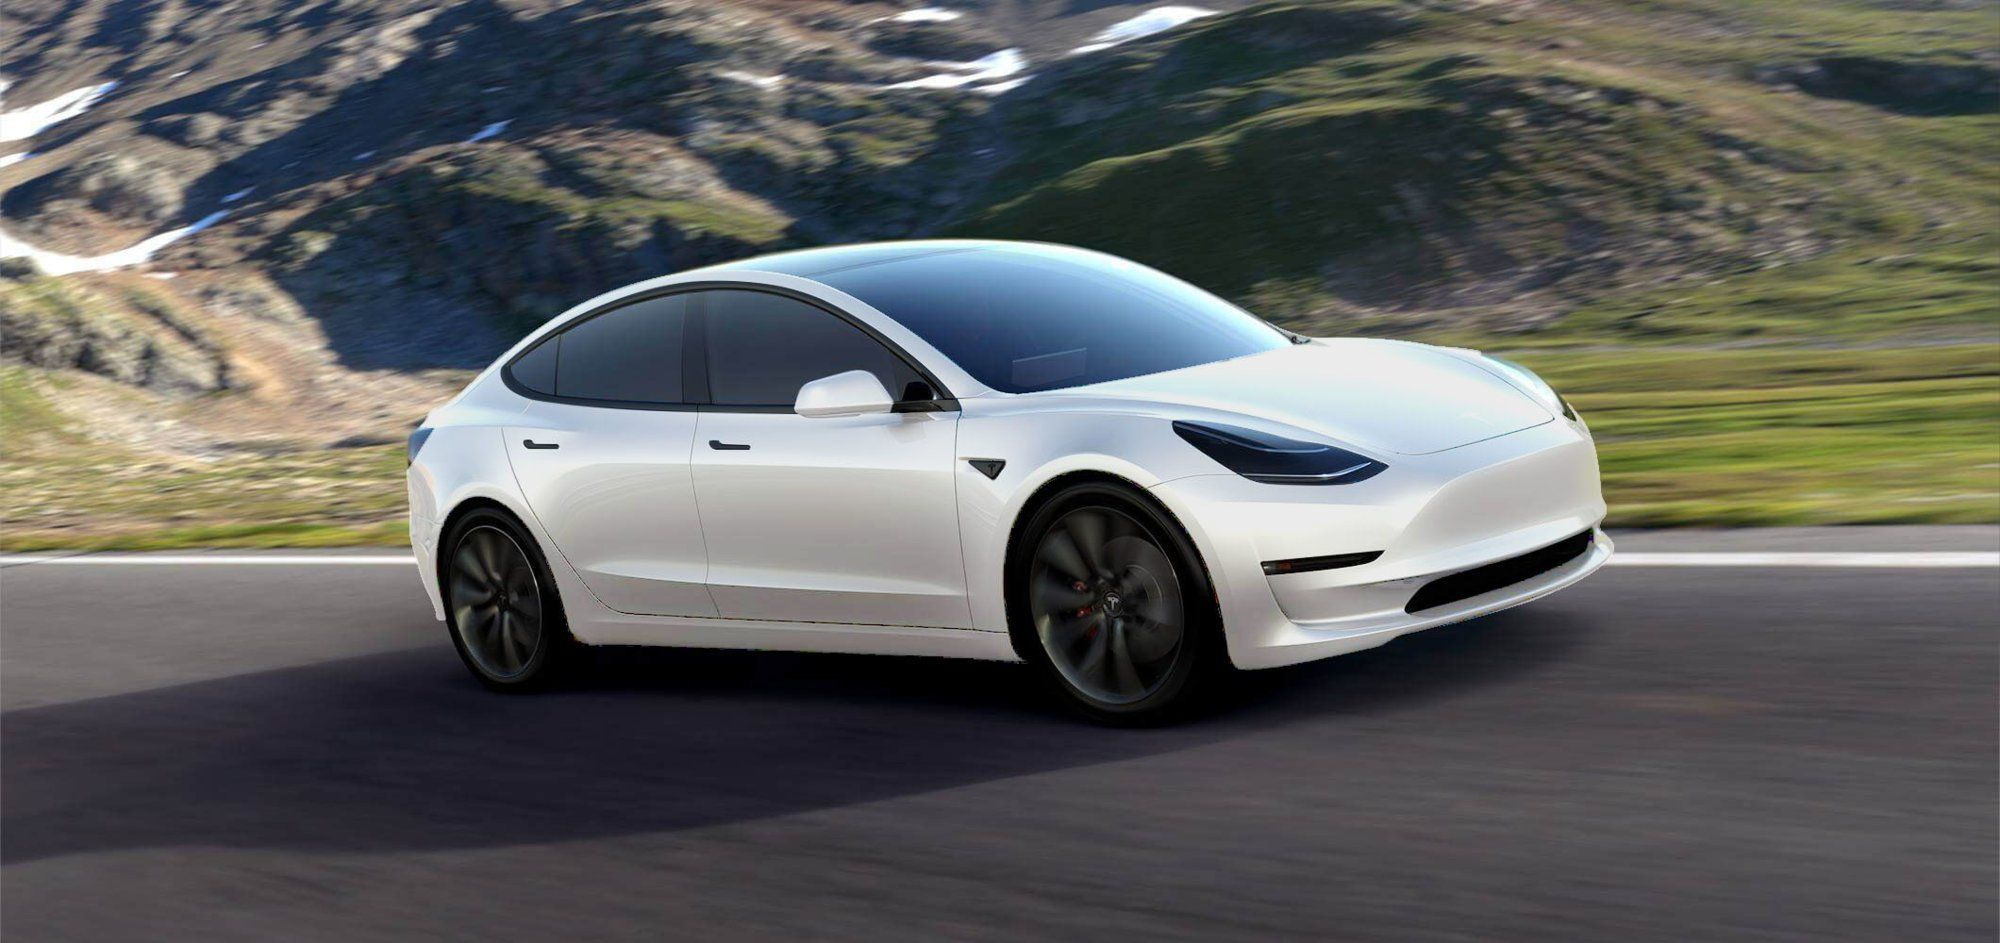 white tesla model 3 automobiles motorcyles tesla roadster tesla motors tesla model x. Black Bedroom Furniture Sets. Home Design Ideas